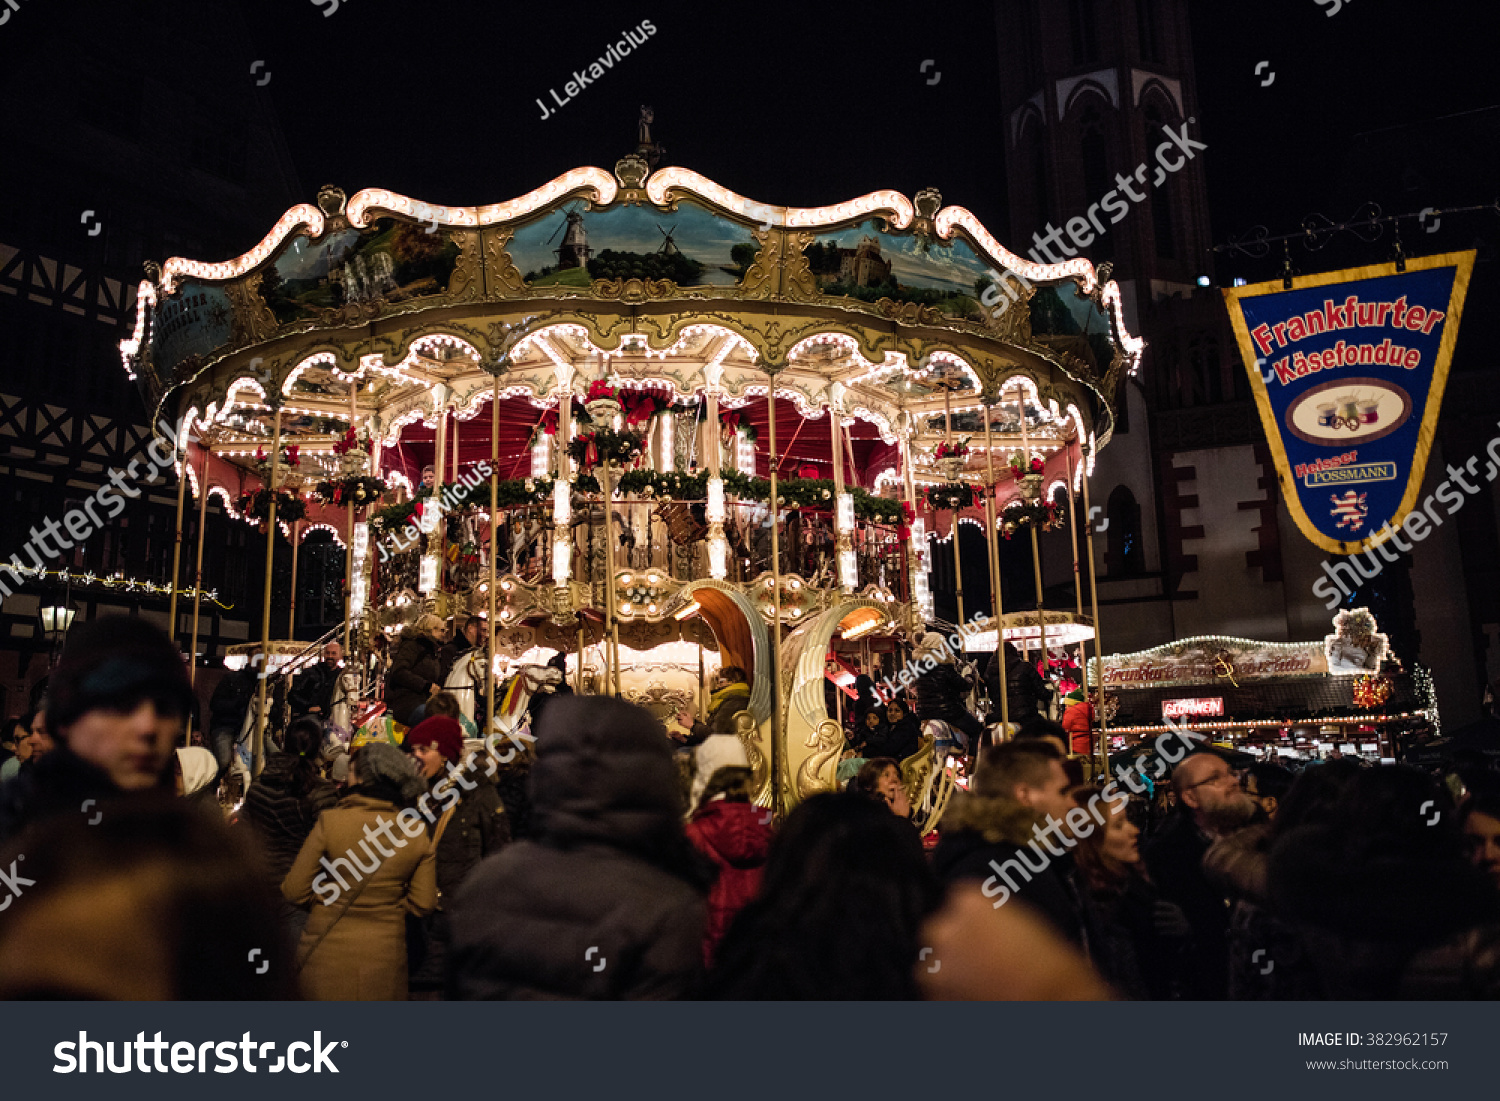 FRANKFURT November 28 2015 People visit traditional christmas market in Frankfurt Germany First Christmas market was held in 1393 Frankfurt's is one of the biggest market in Germany